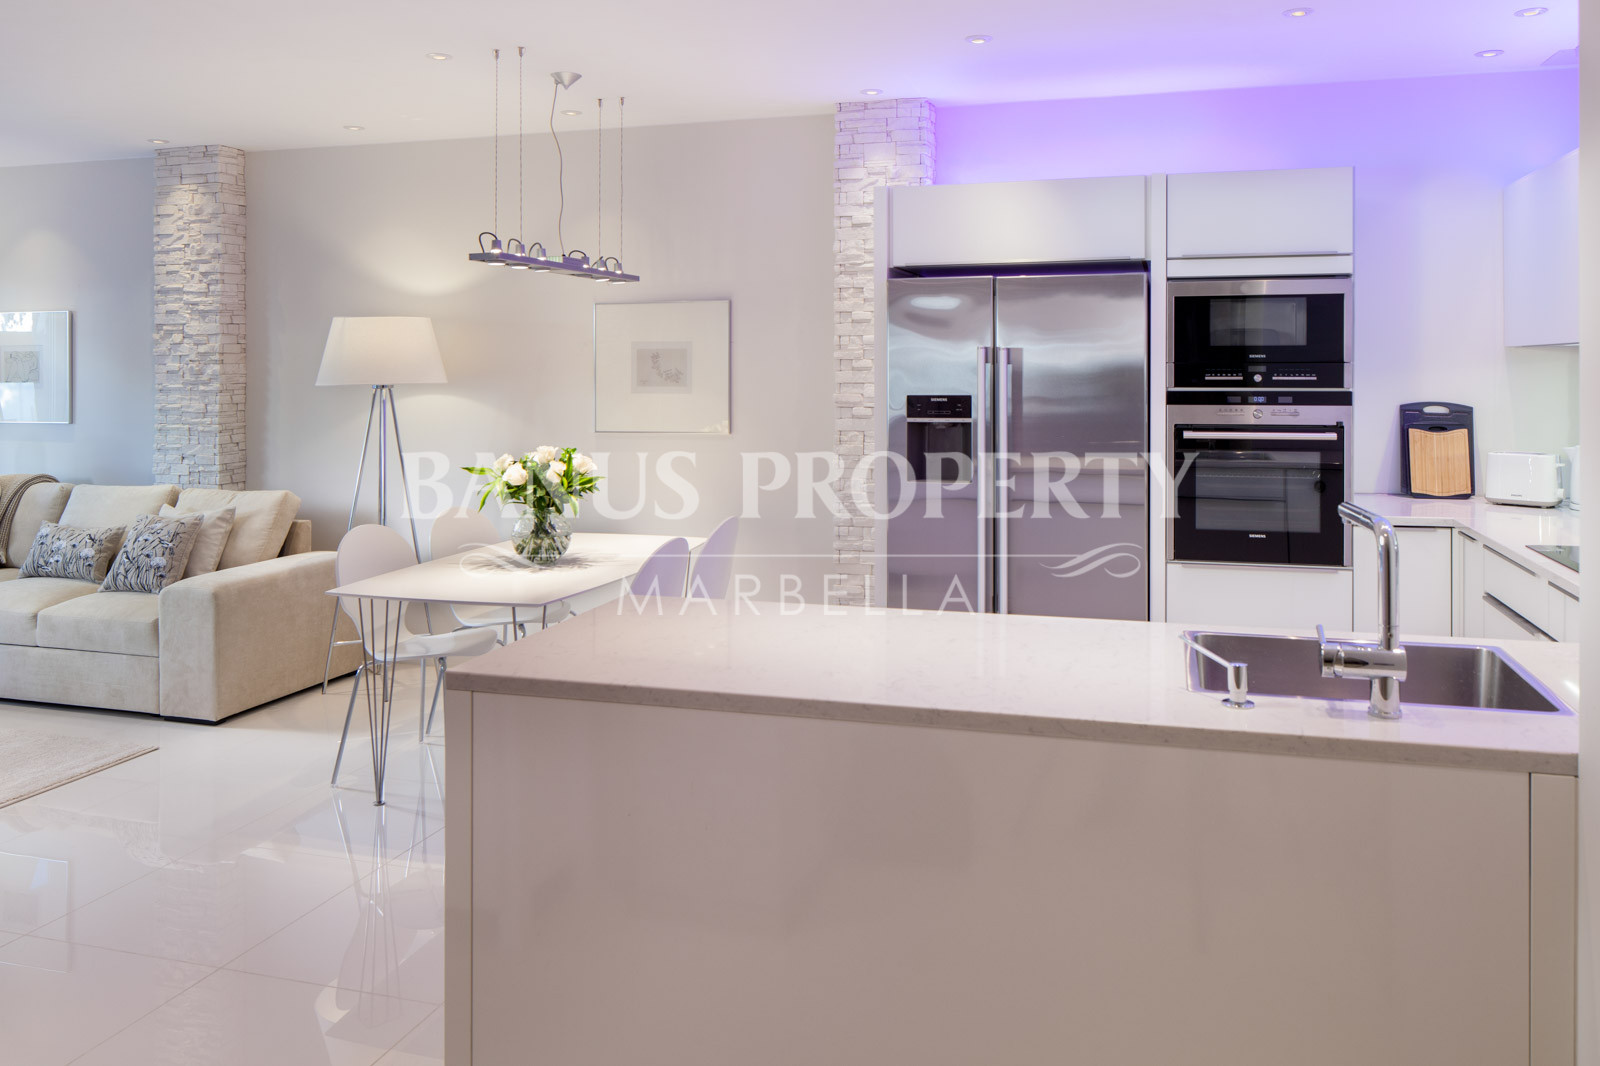 Contemporary 1 bedroom south-east facing apartment for rent in Andalucia del Mar, Puerto Banus